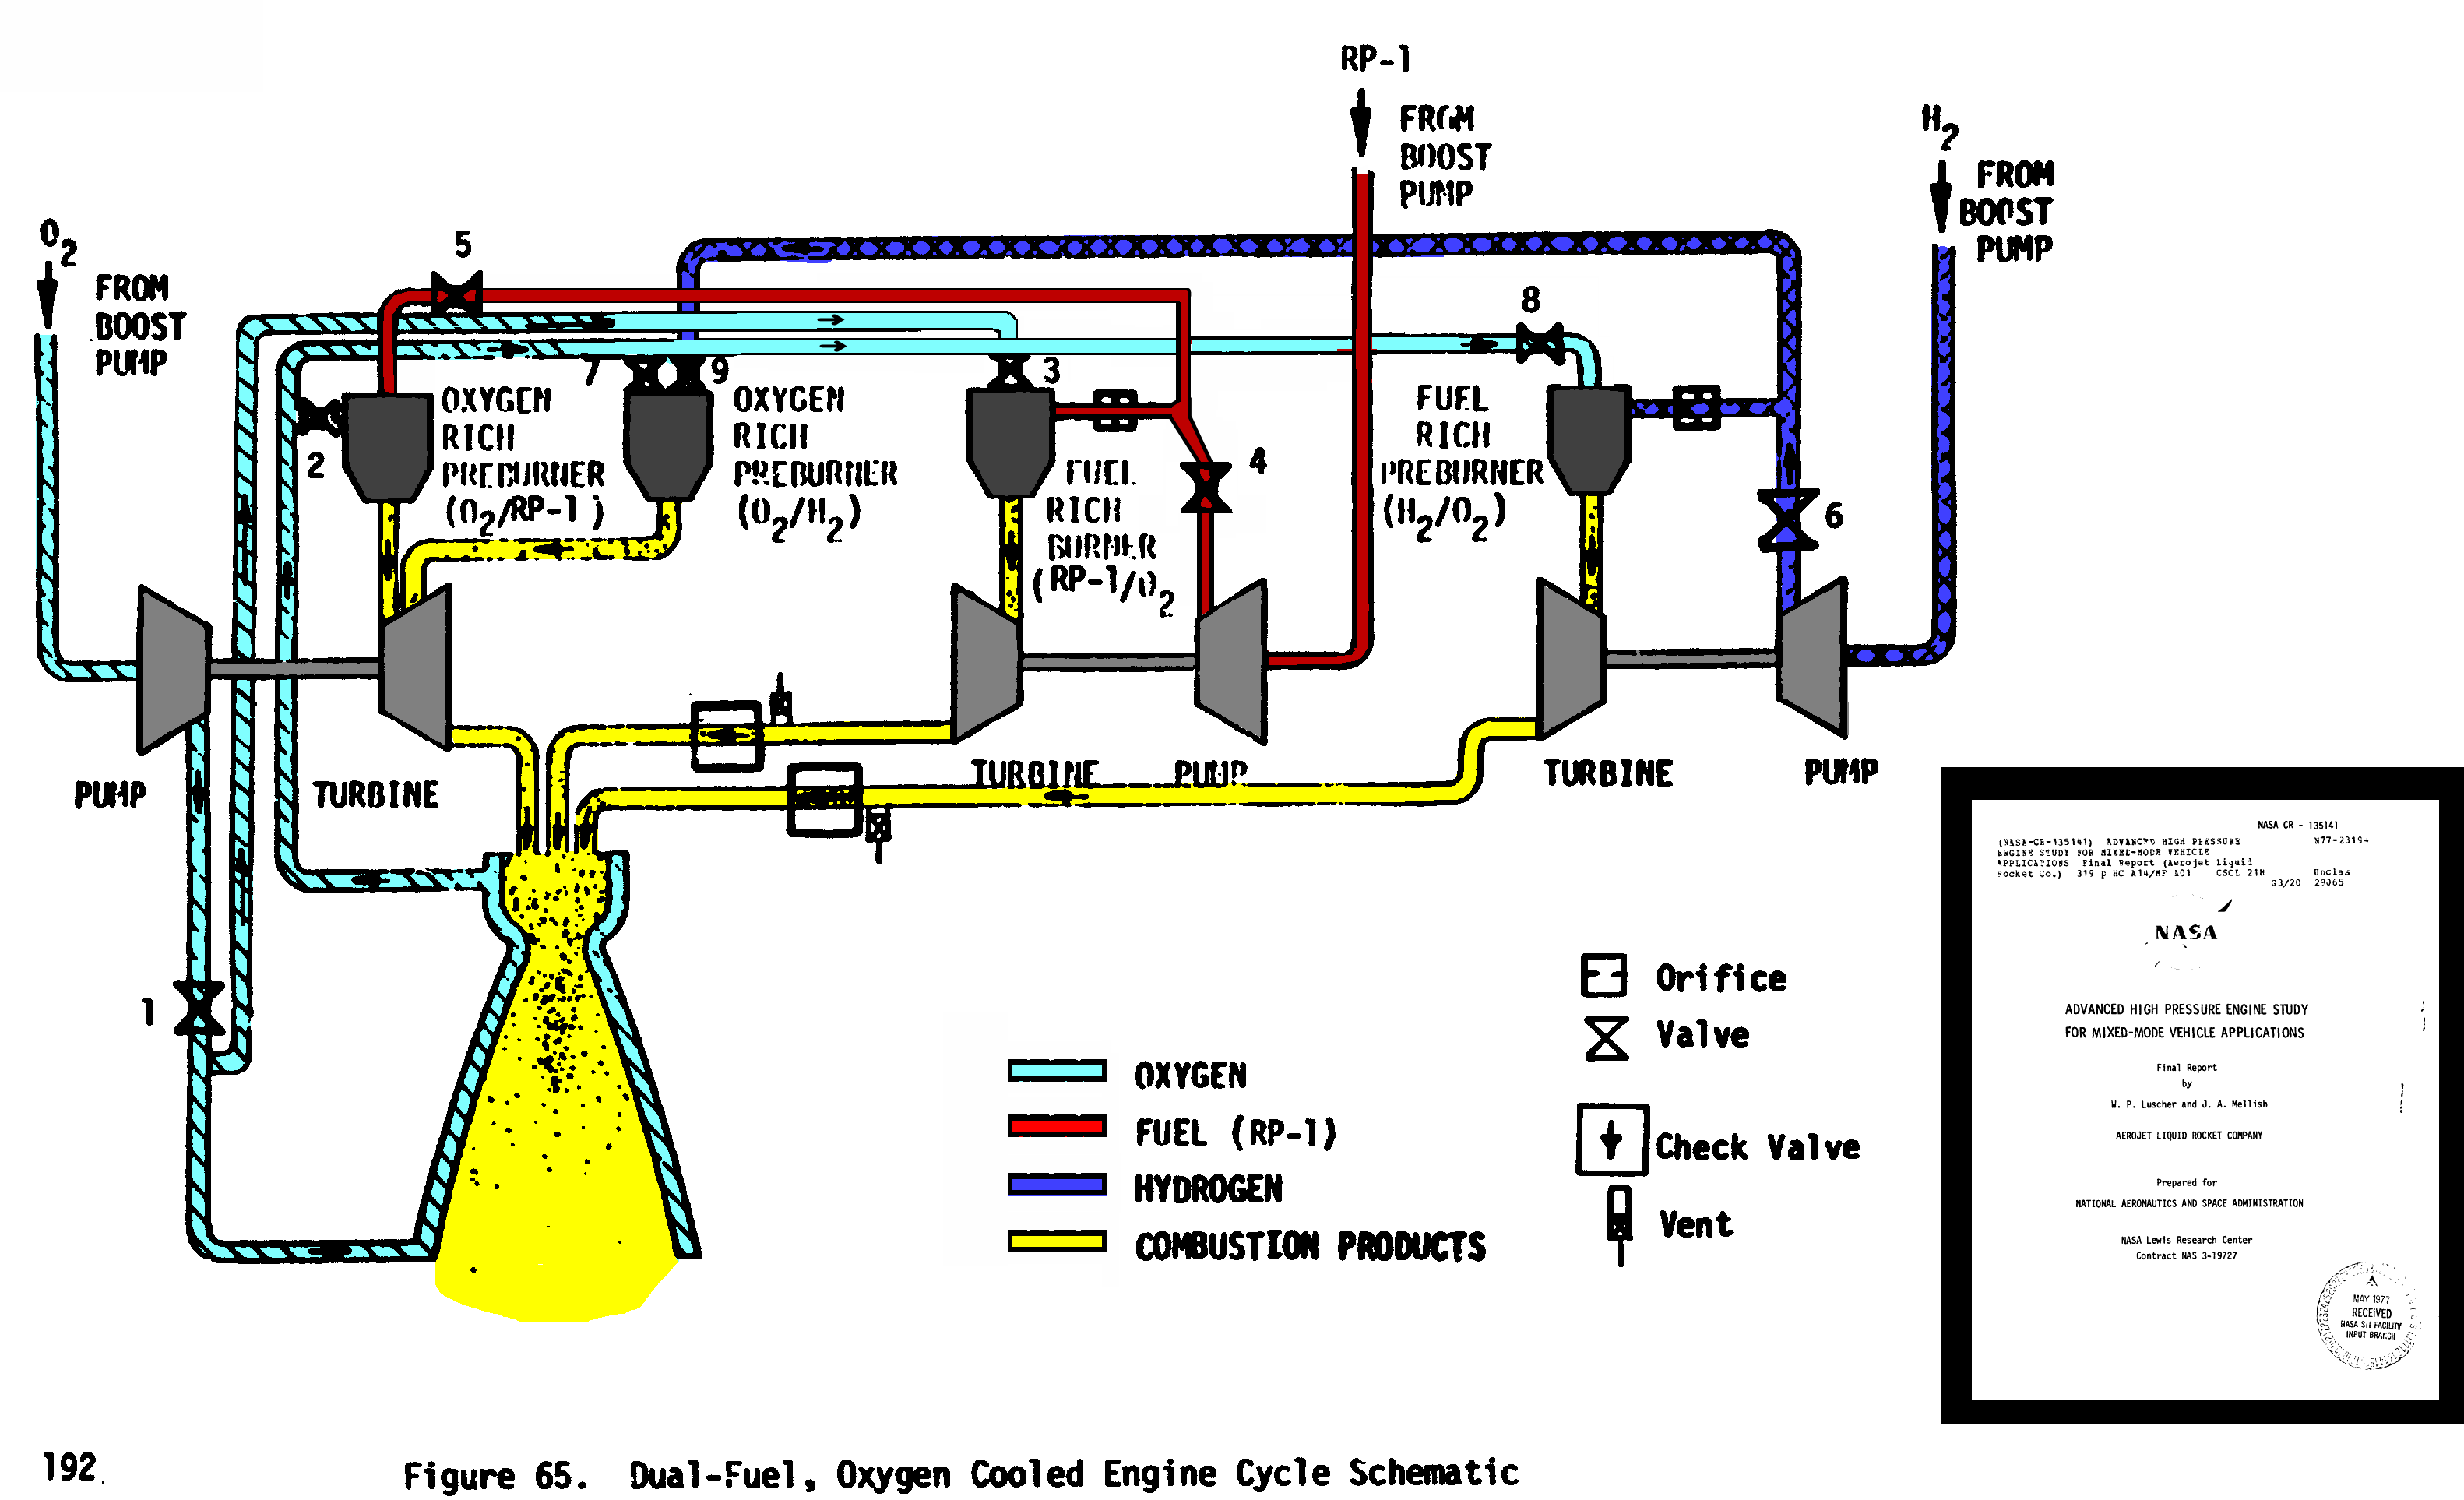 merlin rocket engine schematic auto electrical wiring diagram u2022 rh 6weeks co uk